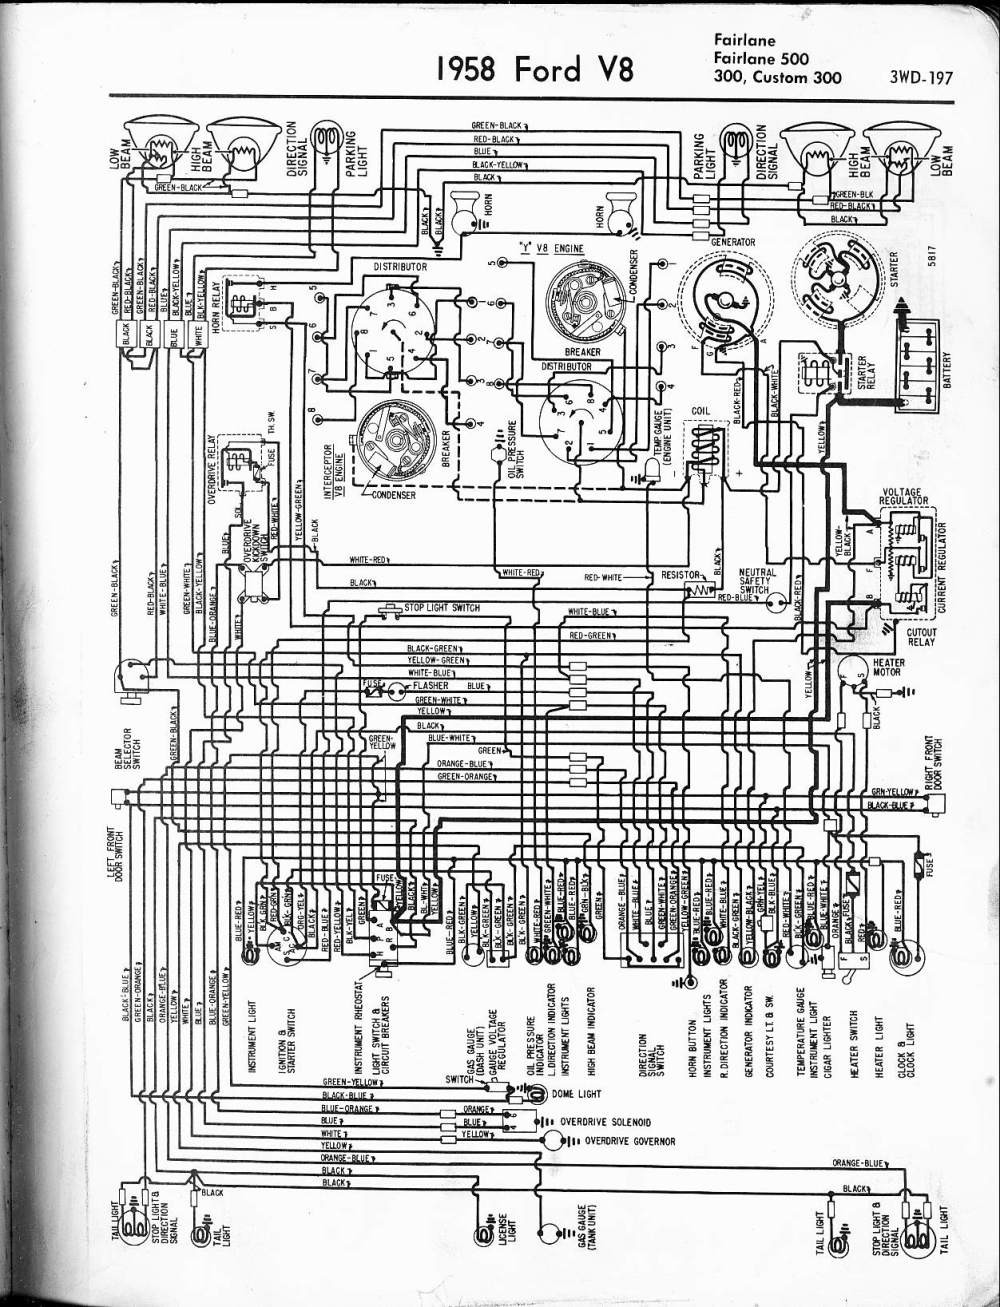 medium resolution of 1967 fairlane wiring diagram free wiring diagram todays rh 10 15 9 1813weddingbarn com 1967 vw wiring diagram 1967 ford mustang wiring diagram